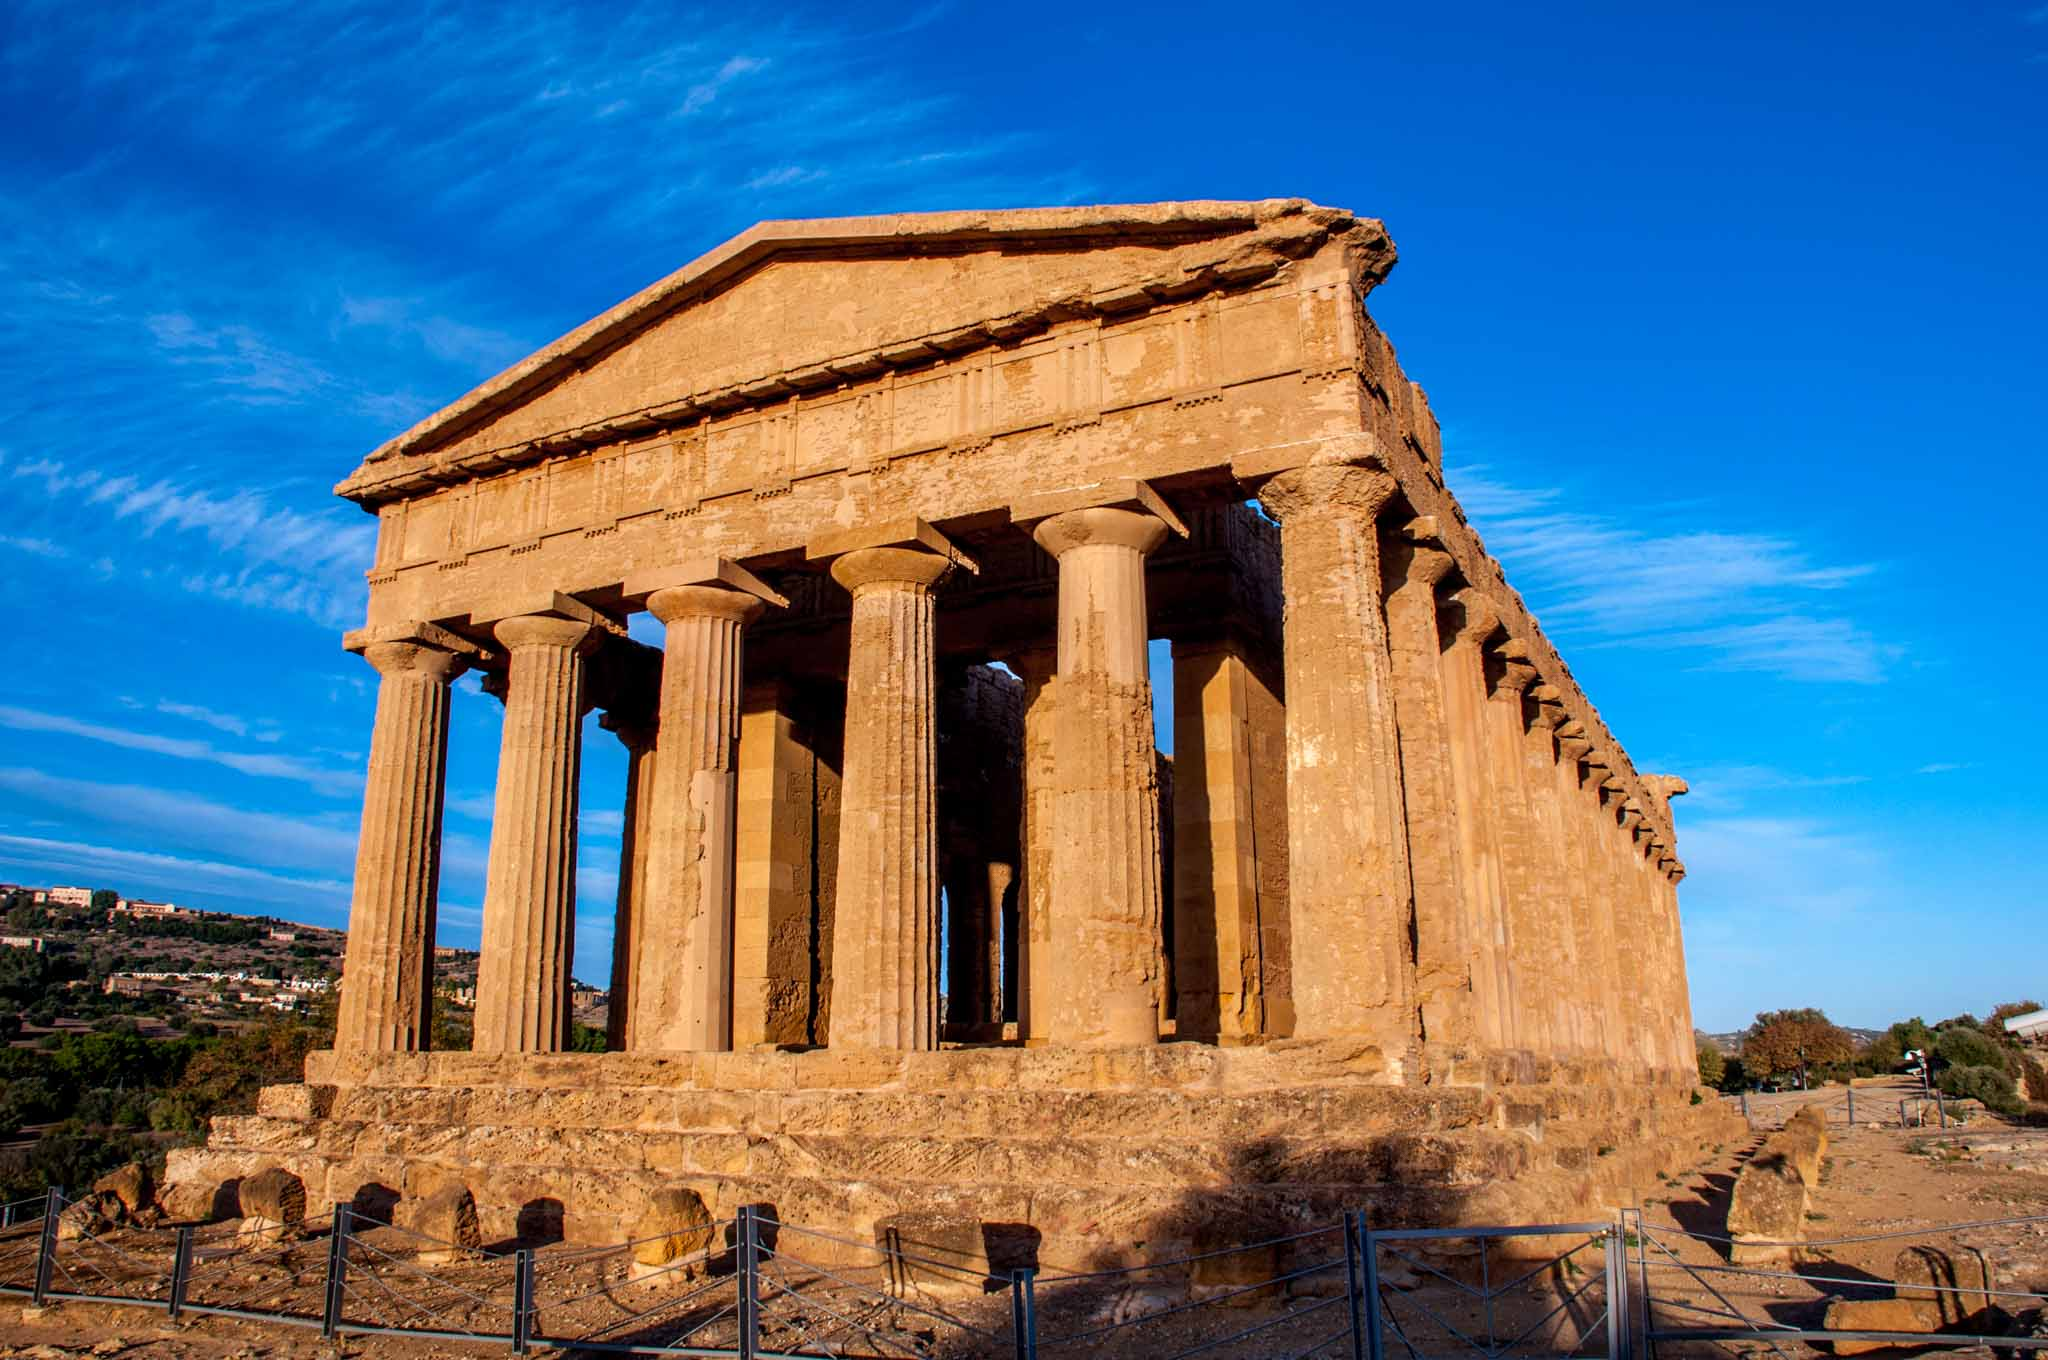 Ruins of an ancient temple in Agrigento, Sicily